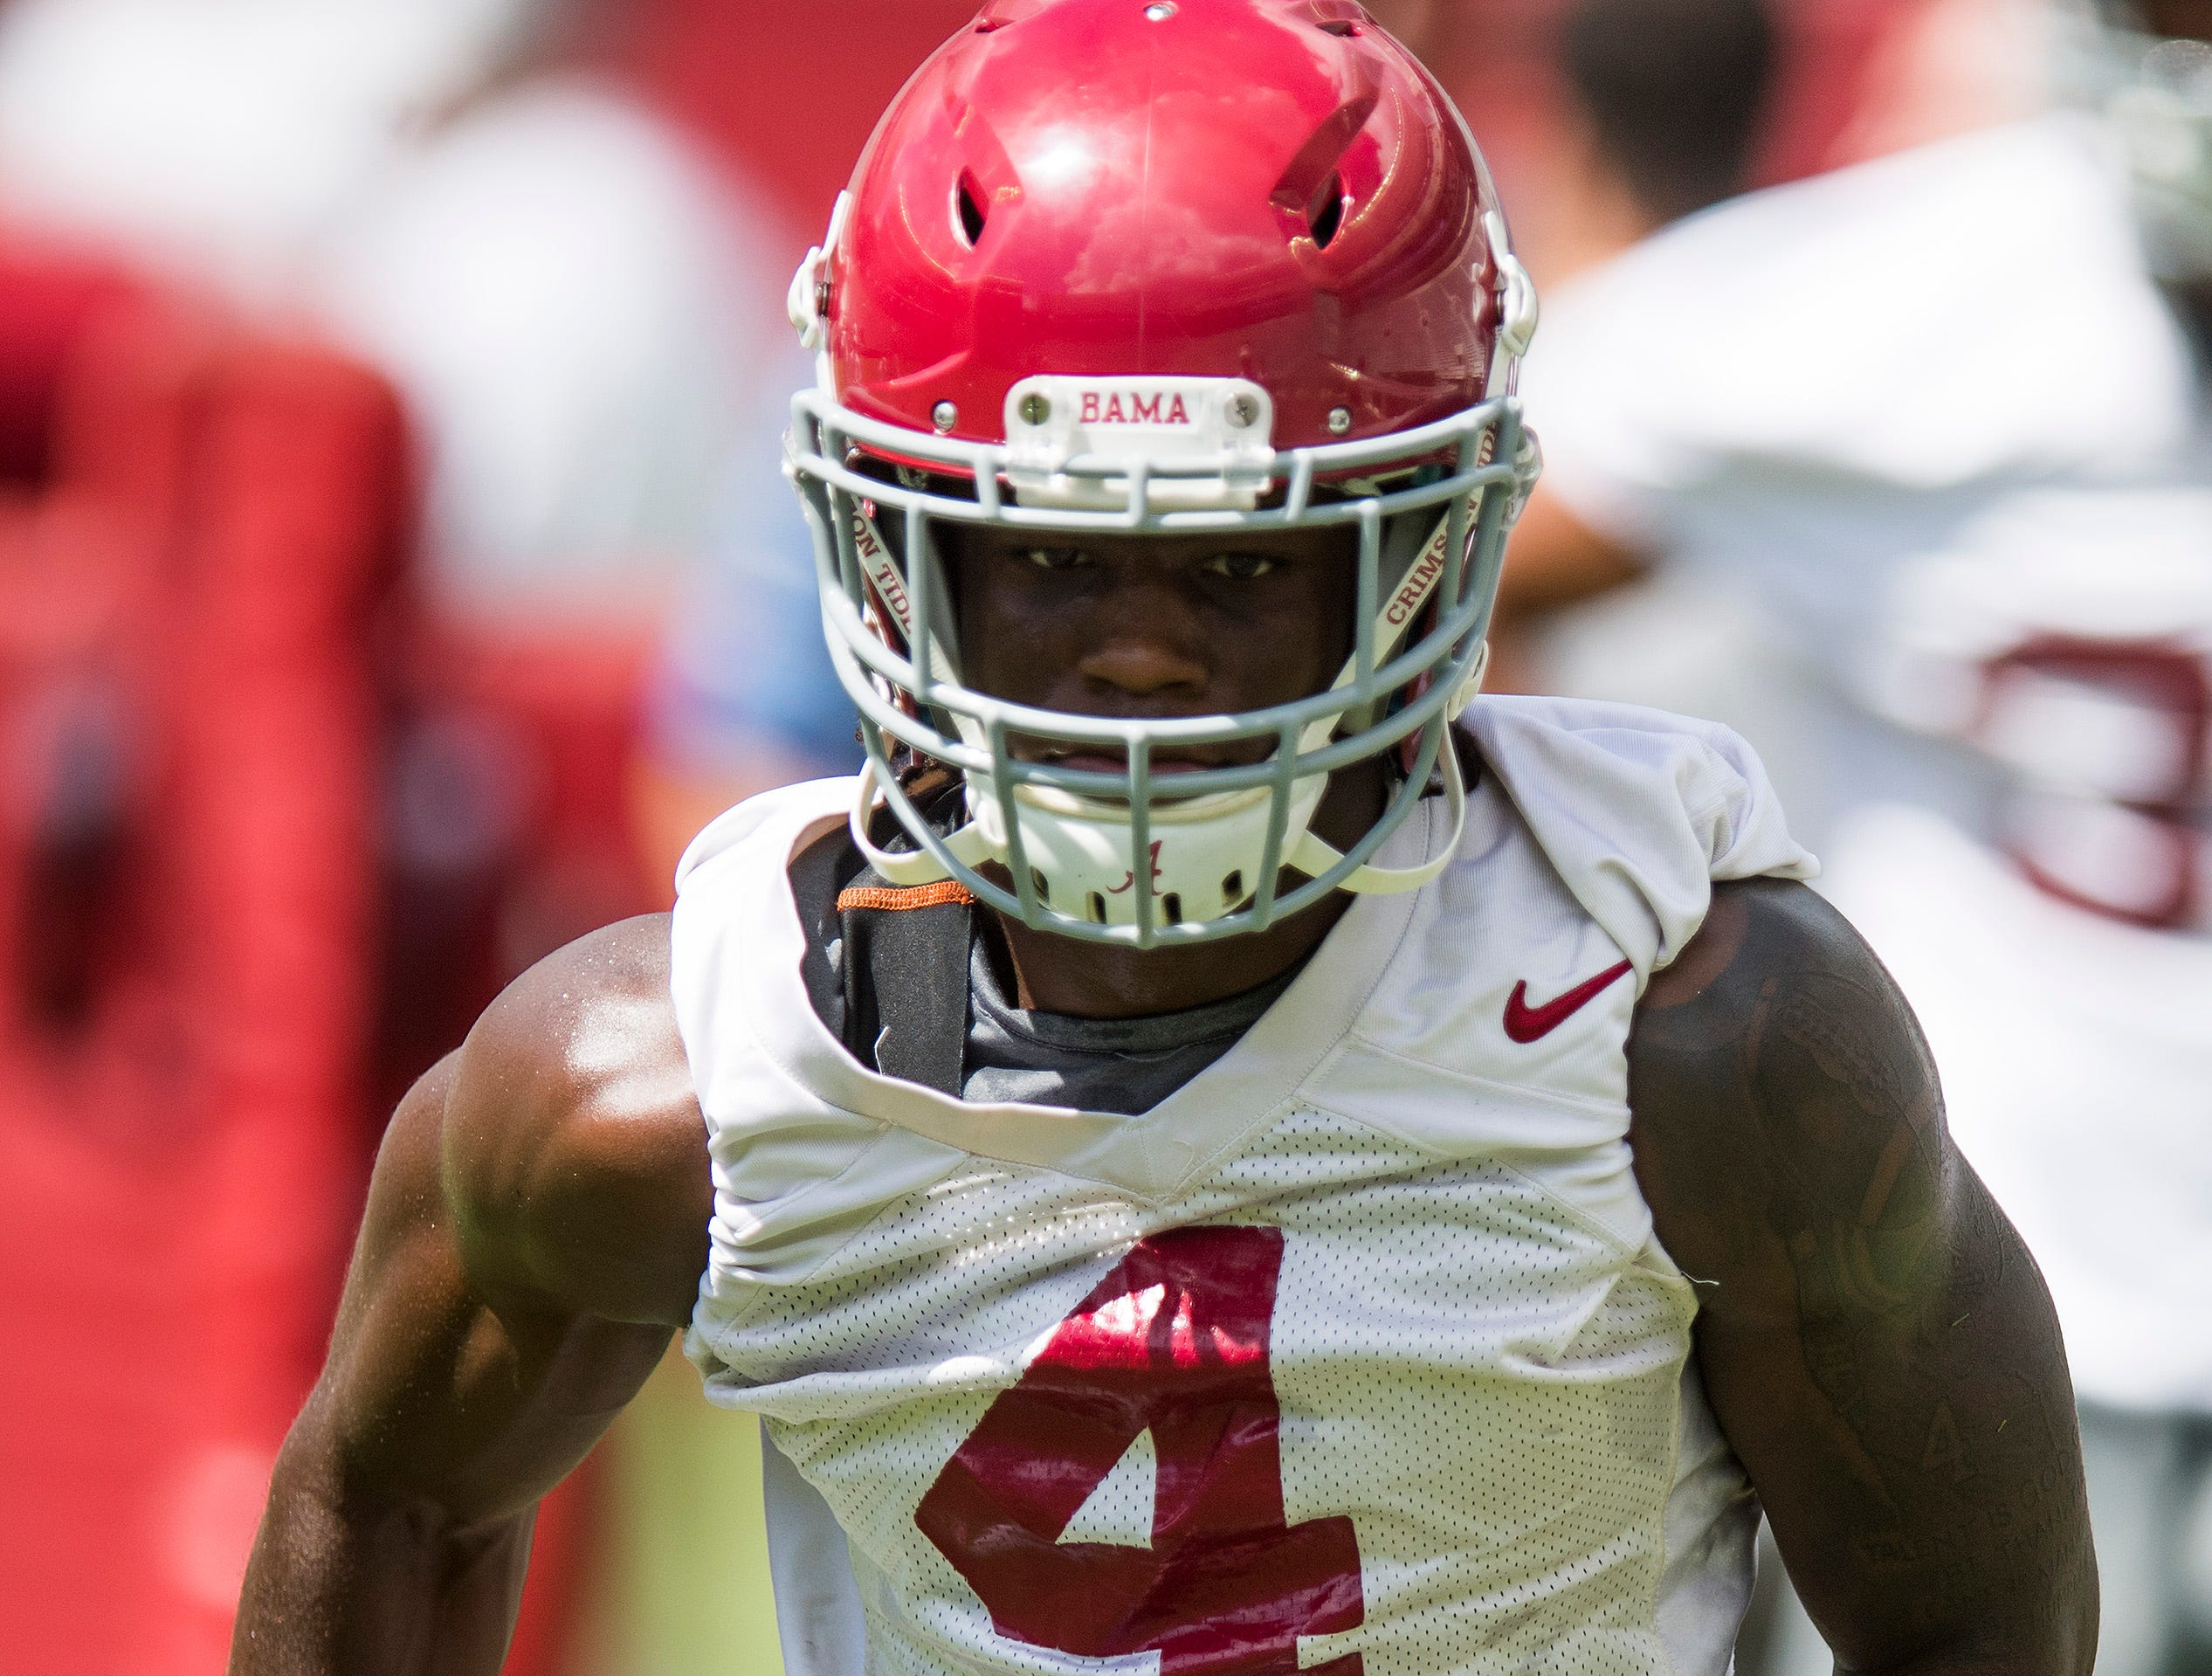 Receiver Jerry Jeudy runs drills as the University of Alabama football team holds practice in Bryant-Denny Stadium on the Alabama campus in Tuscaloosa, Ala. on Saturday August 4, 2018.